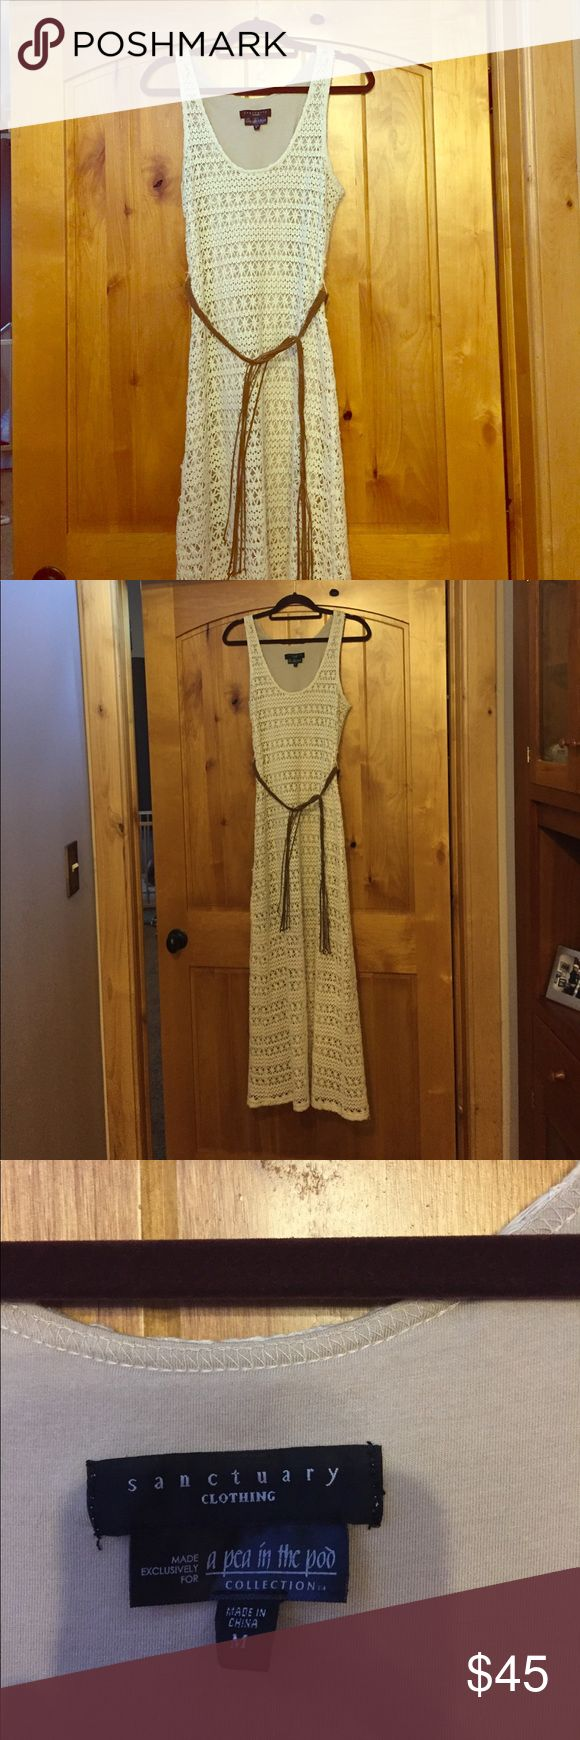 Sanctuary maxi dress for a pea in the pod Cream maxi dress, crocheted look. Beige lining goes down to just above the knee, and the dress is a maxi length. Brown braided belt sits above stomach. Size medium:). I bought as a maternity dress but also wore it once not pregnant and looked fine. Please feel free to make an offer:) Sanctuary Dresses Maxi